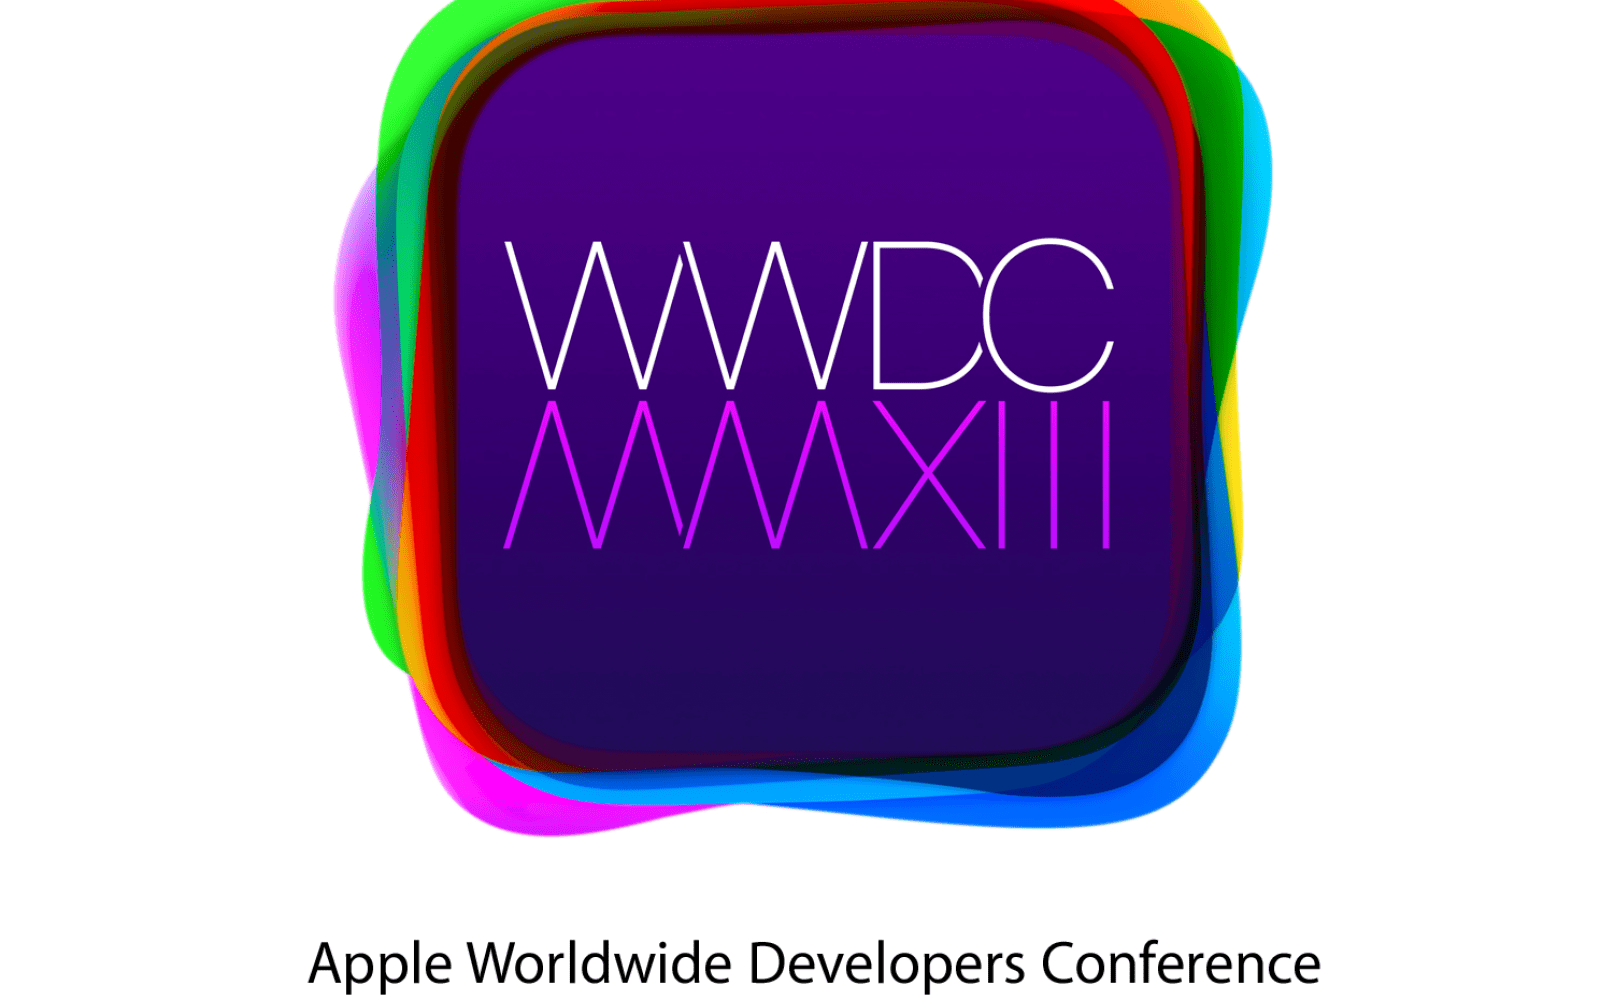 Apple confirms WWDC keynote address scheduled for Monday, June 10th